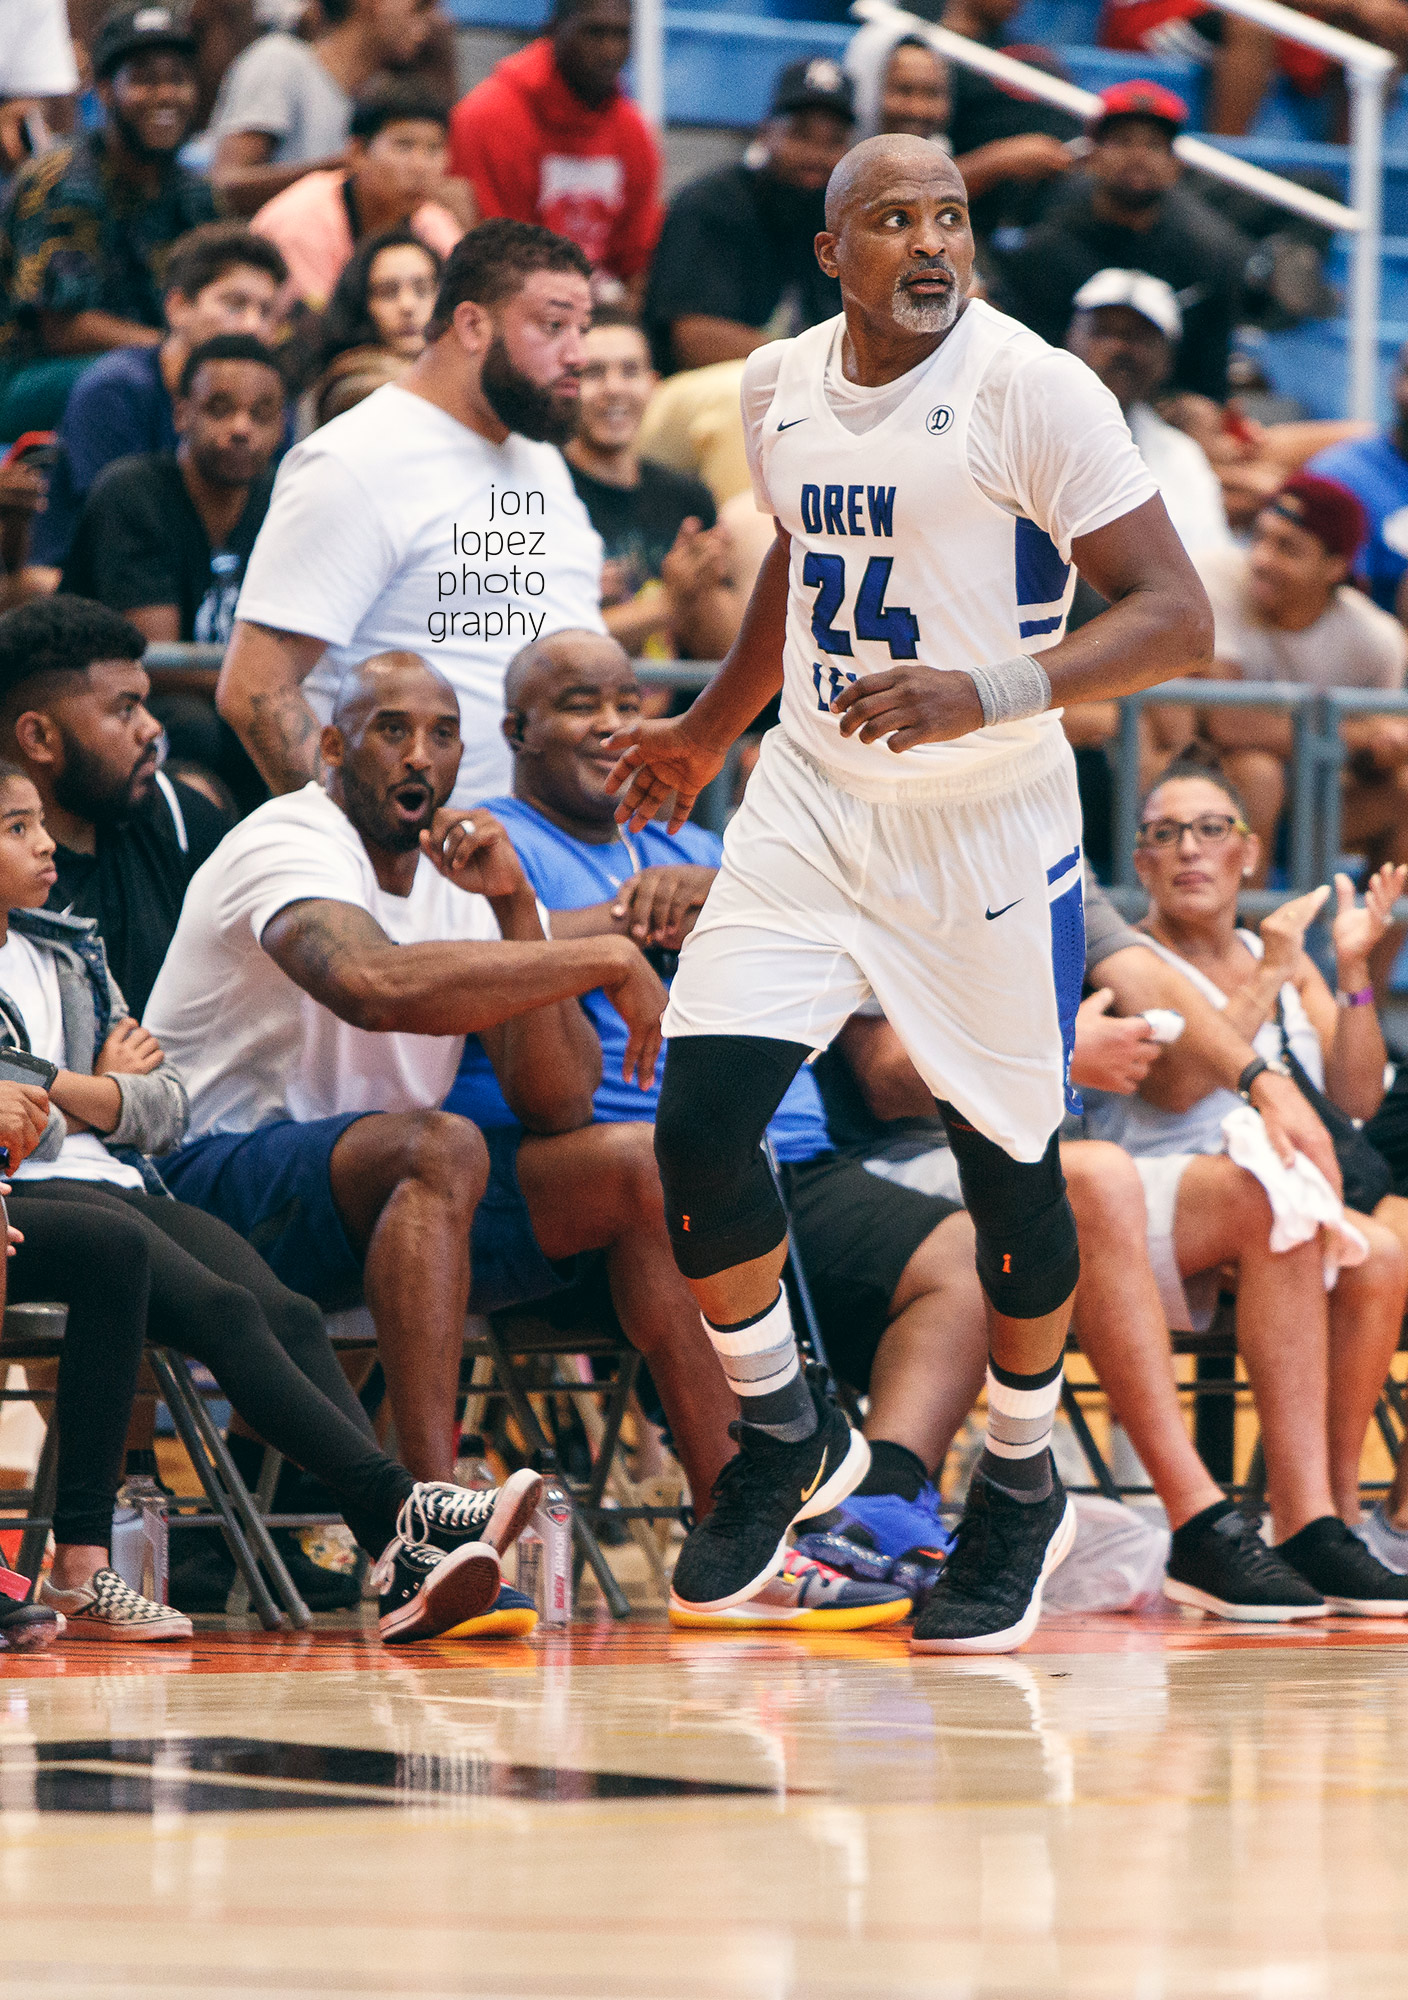 Kobe Bryant encourages Cuttino Mobley from the sidelines of the Drew League championship.